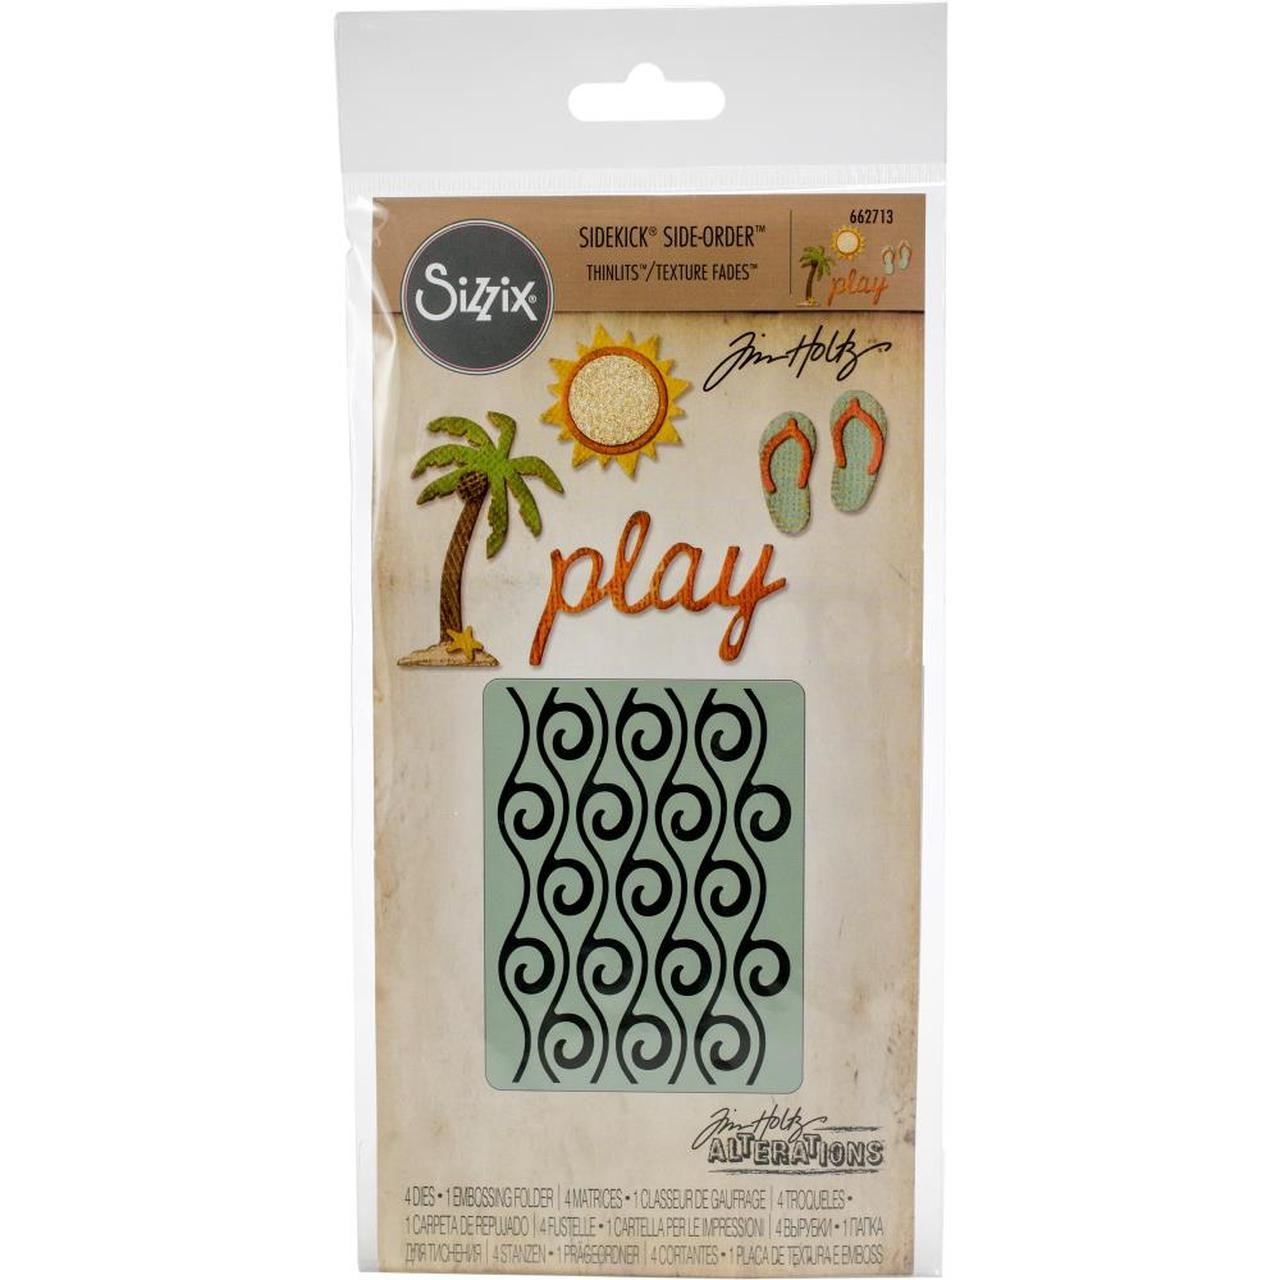 Sizzix Sidekick Side-Order Thinlits Beach